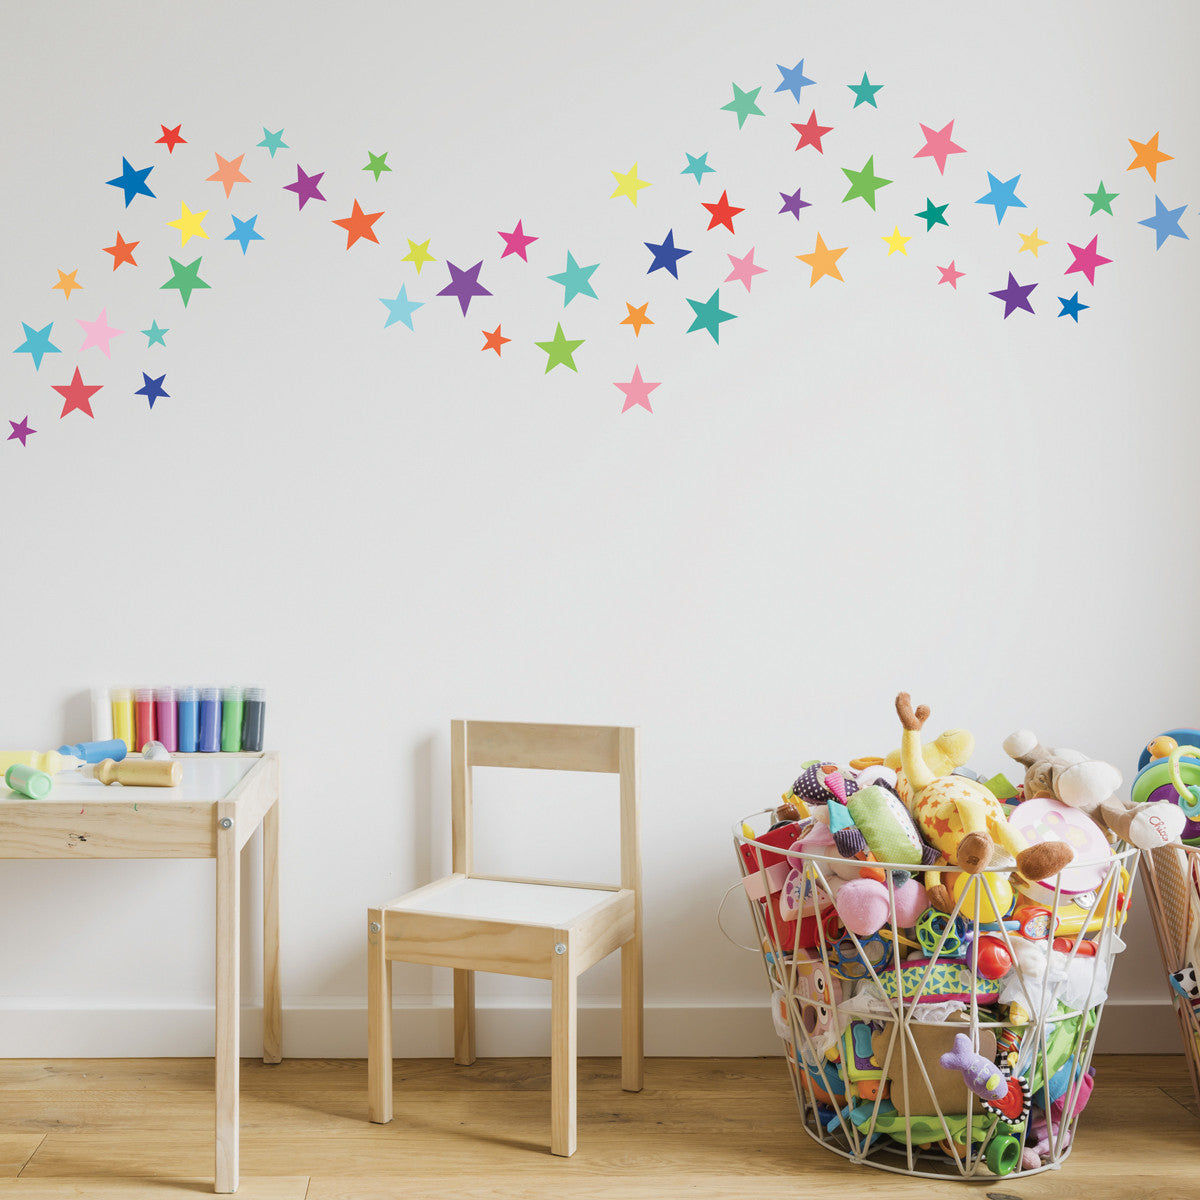 52897d362e13a Wall Decals Stars Rainbow Colors Eco-Friendly Fabric Removable & Reusable  Wall Stickers